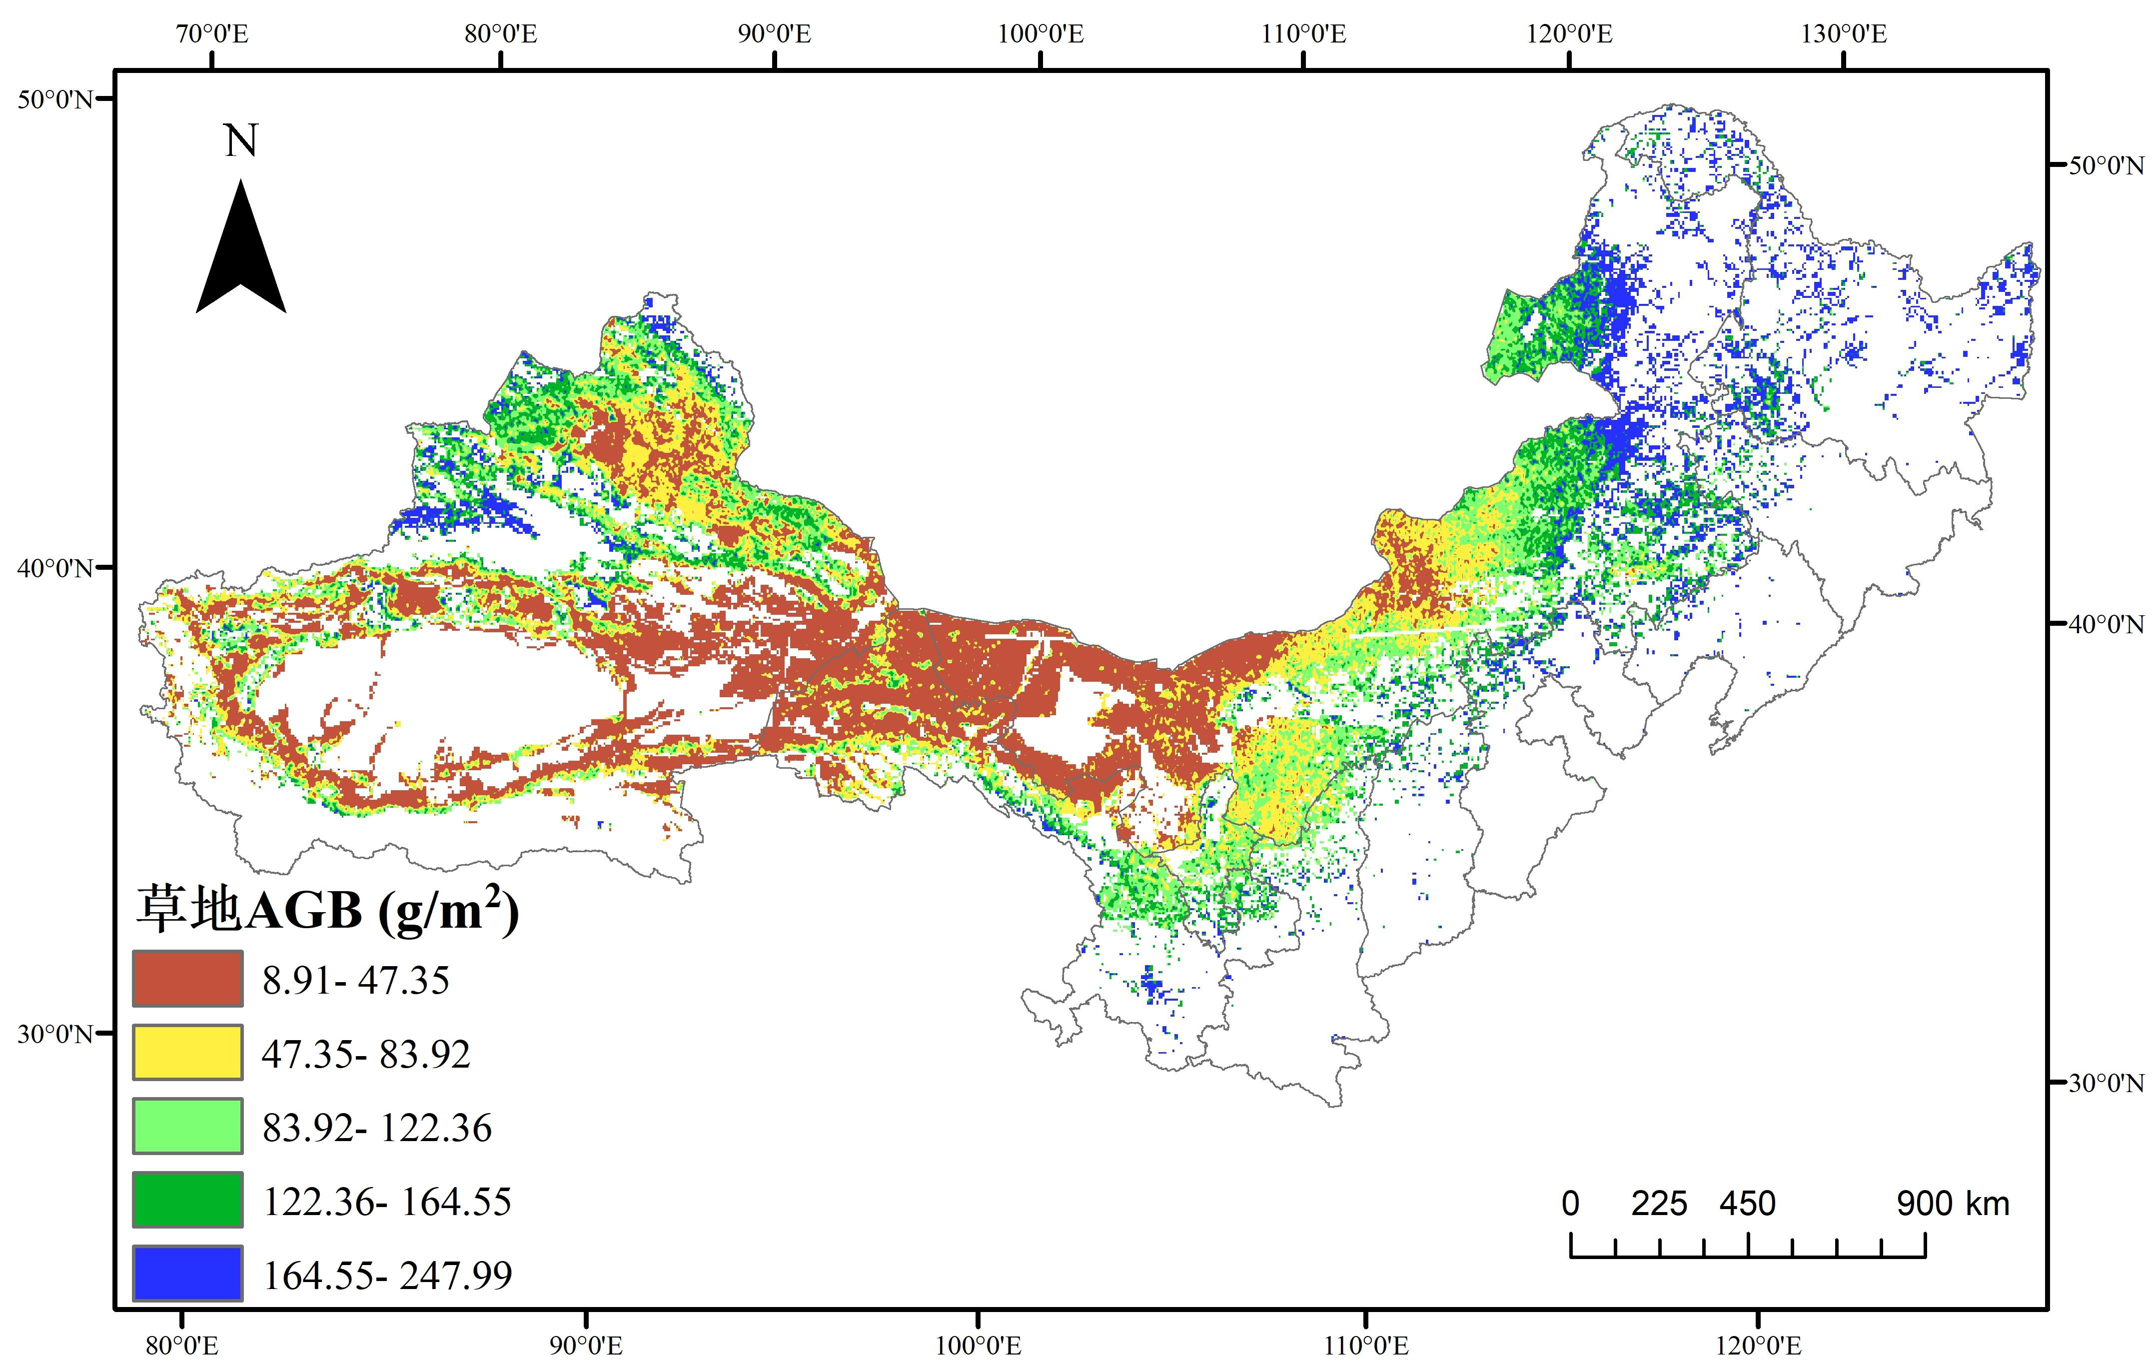 Aboveground biomass data set of temperate grassland in northern China (1993-2019)